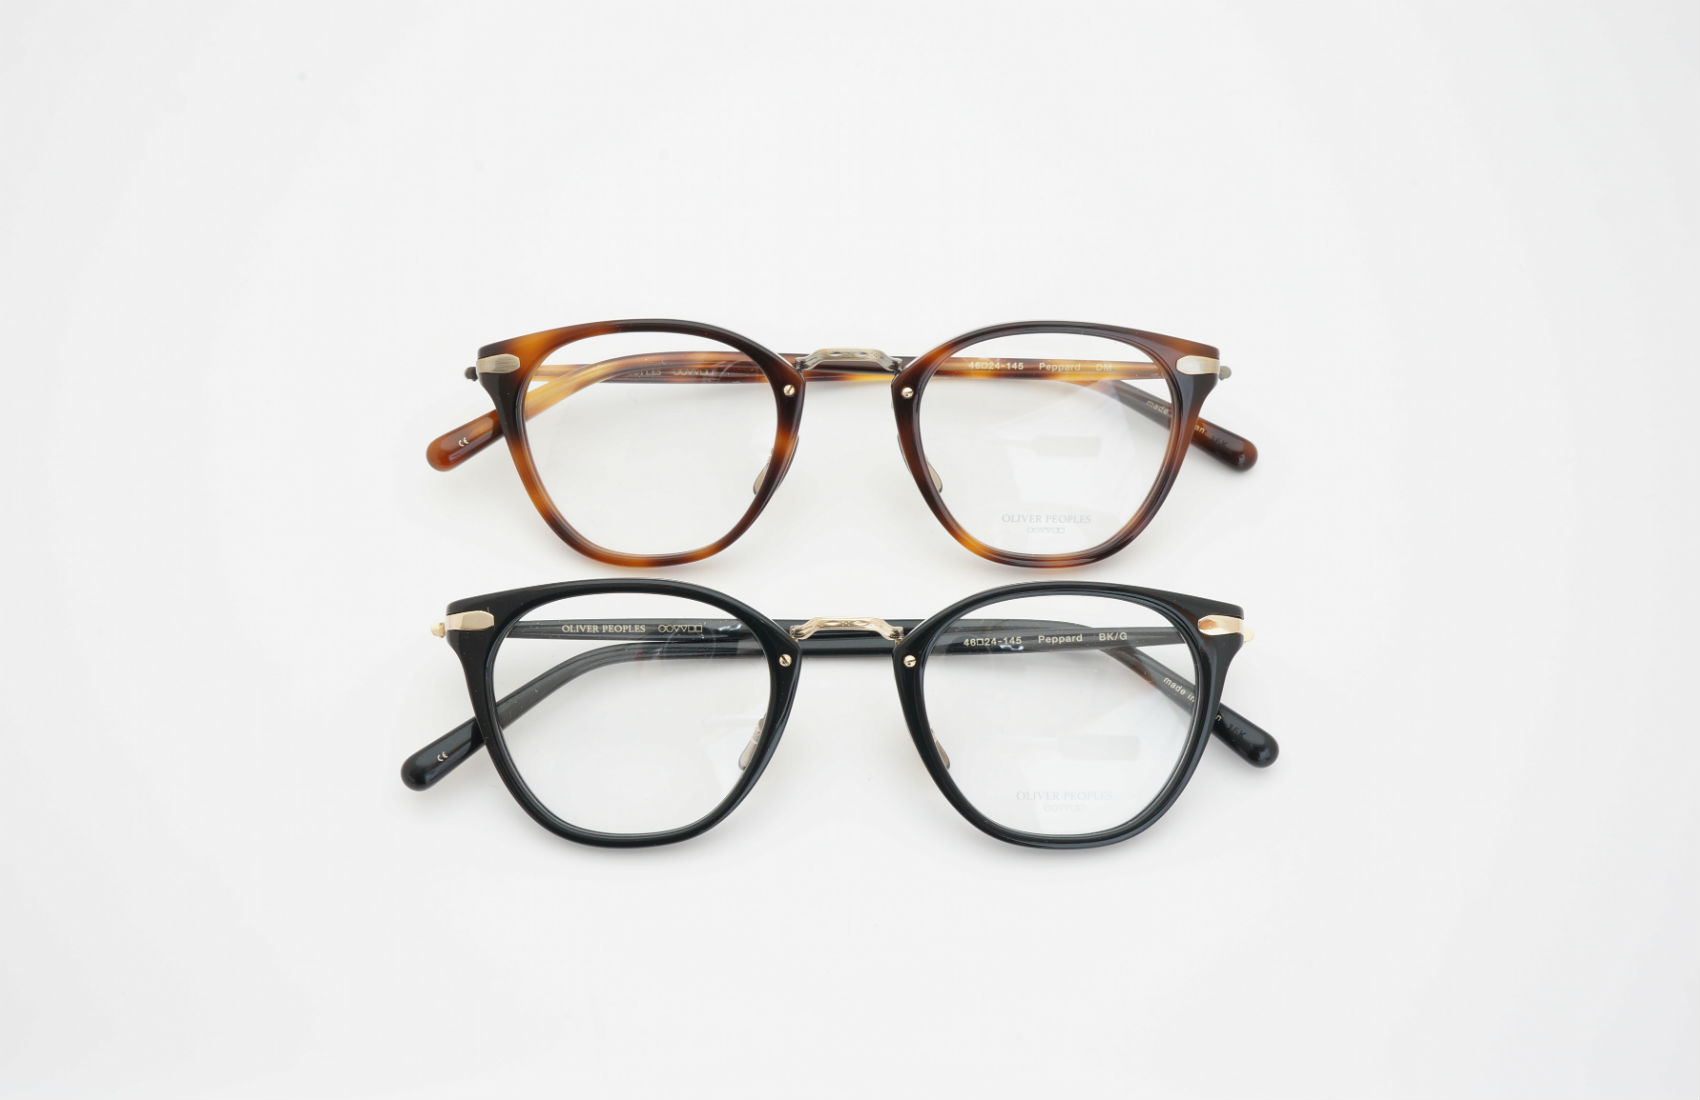 OLIVER PEOPLES Peppard